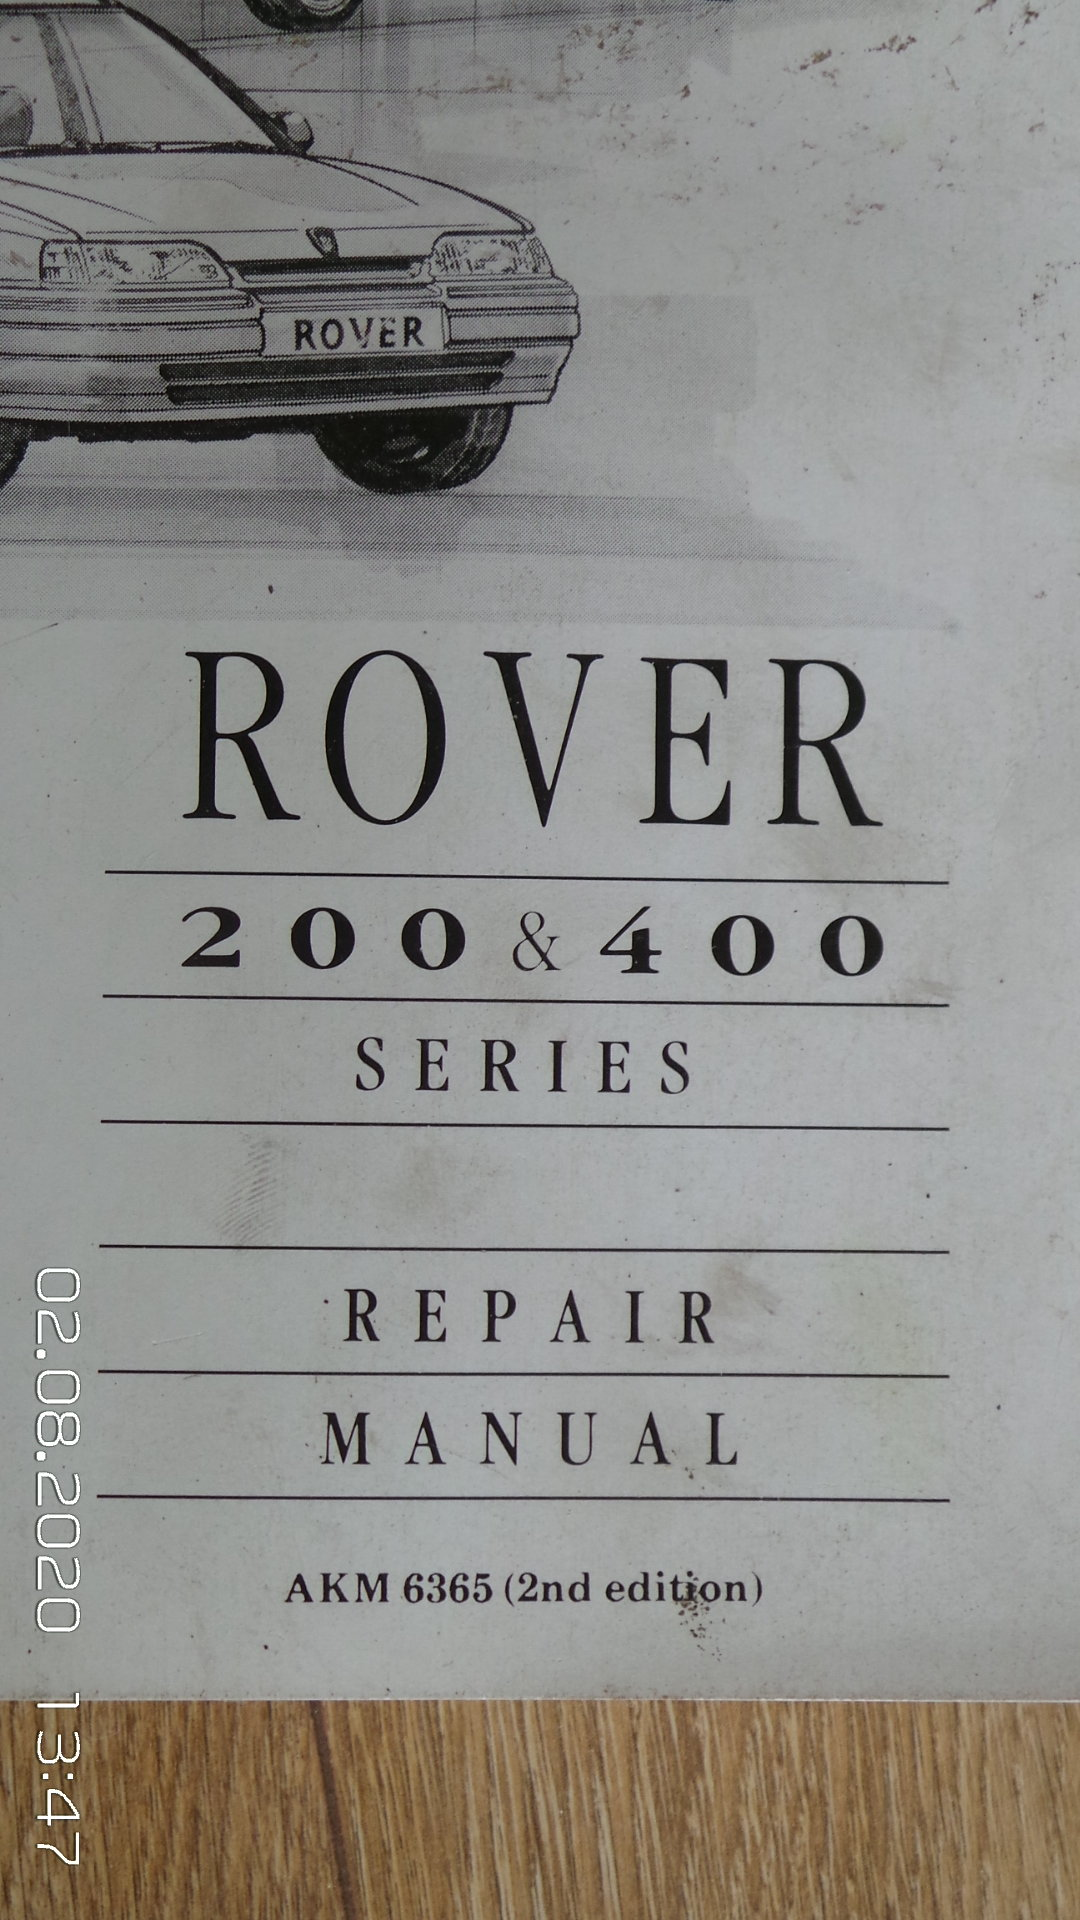 Rover 400 workshop manual For Sale (picture 2 of 3)